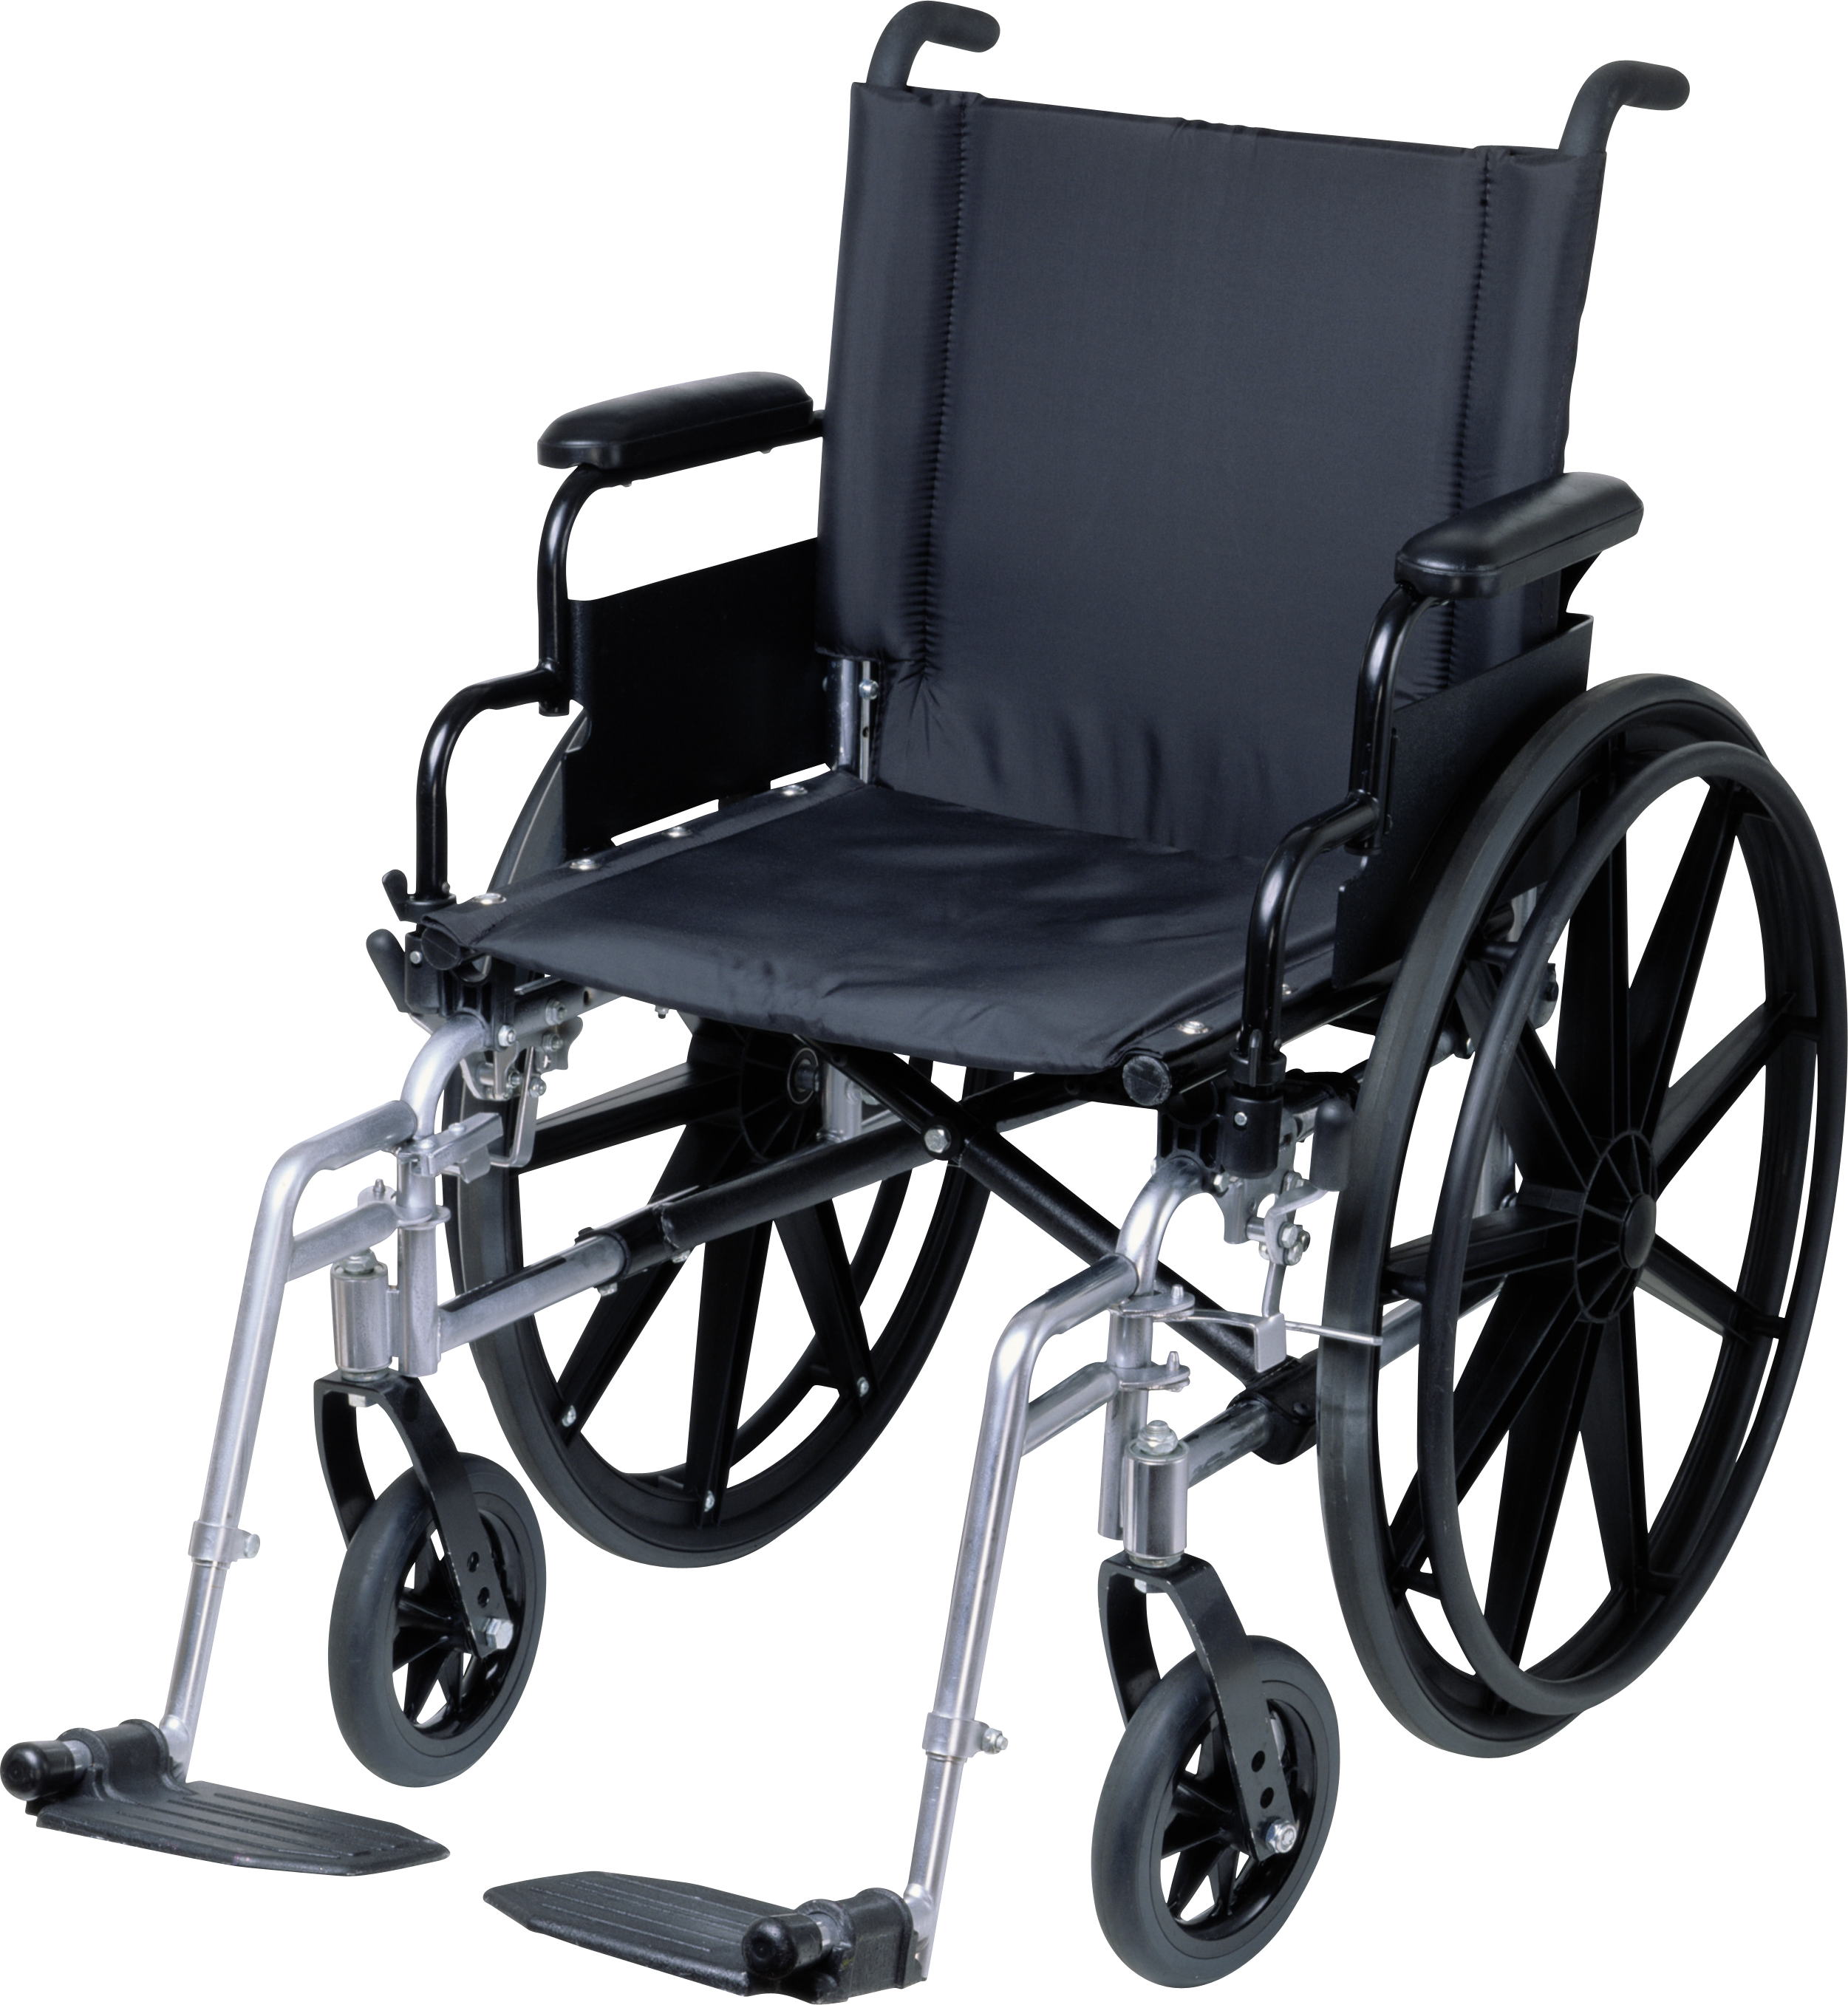 Black Wheelchair Png Image Wheelchair Black Wall Clock Outdoor Chairs